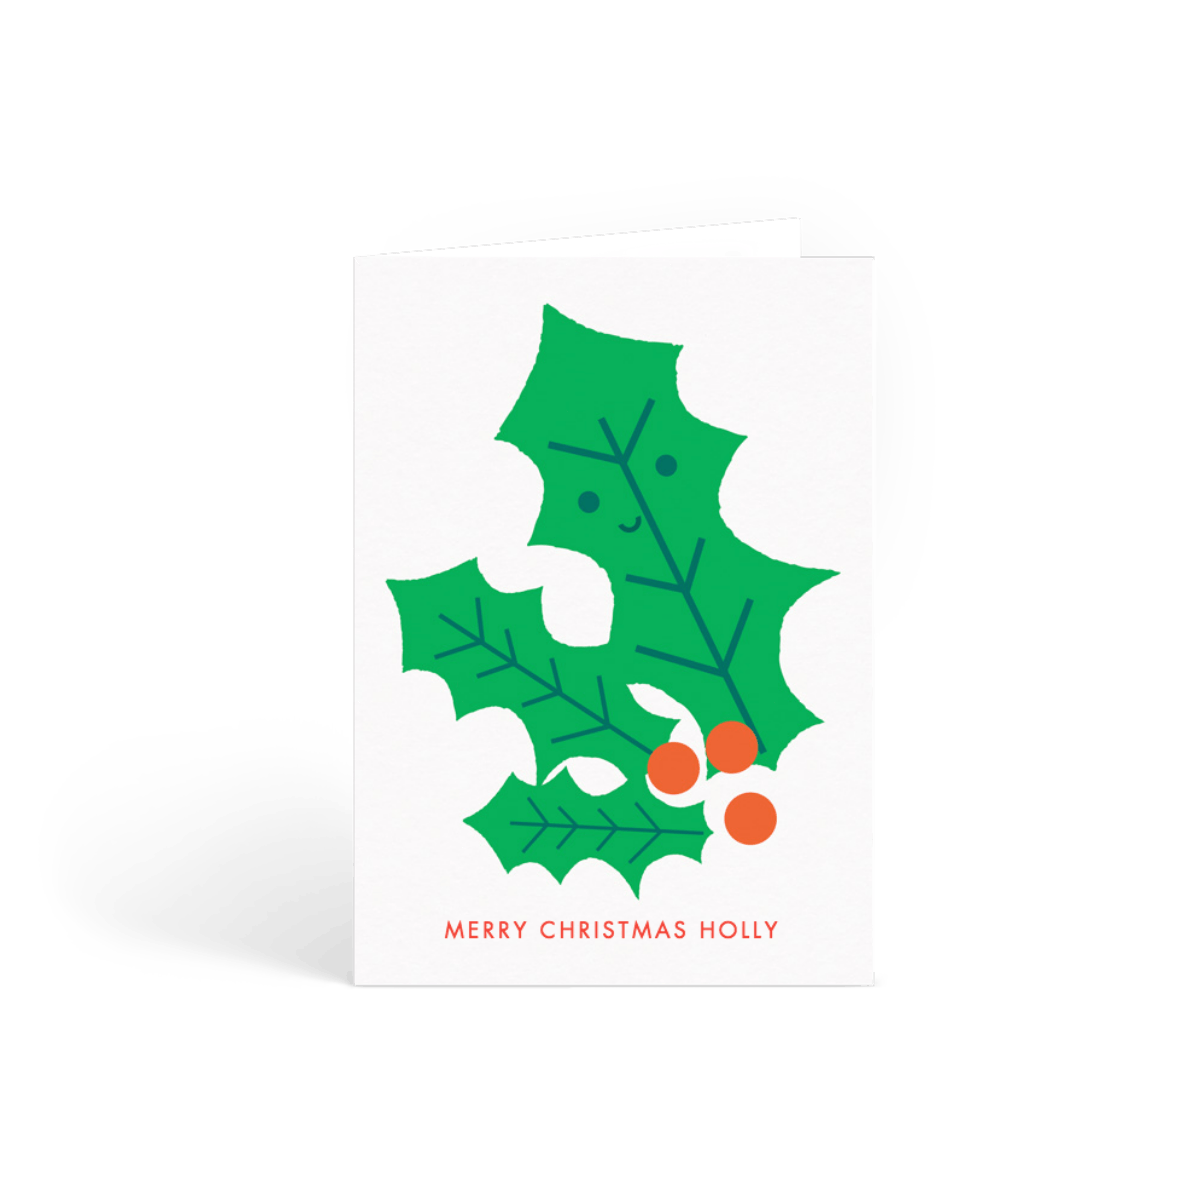 Https%3a%2f%2fwww.papier.com%2fproduct image%2f14291%2f2%2fhappy holly 3818 avant 1570702882.png?ixlib=rb 1.1